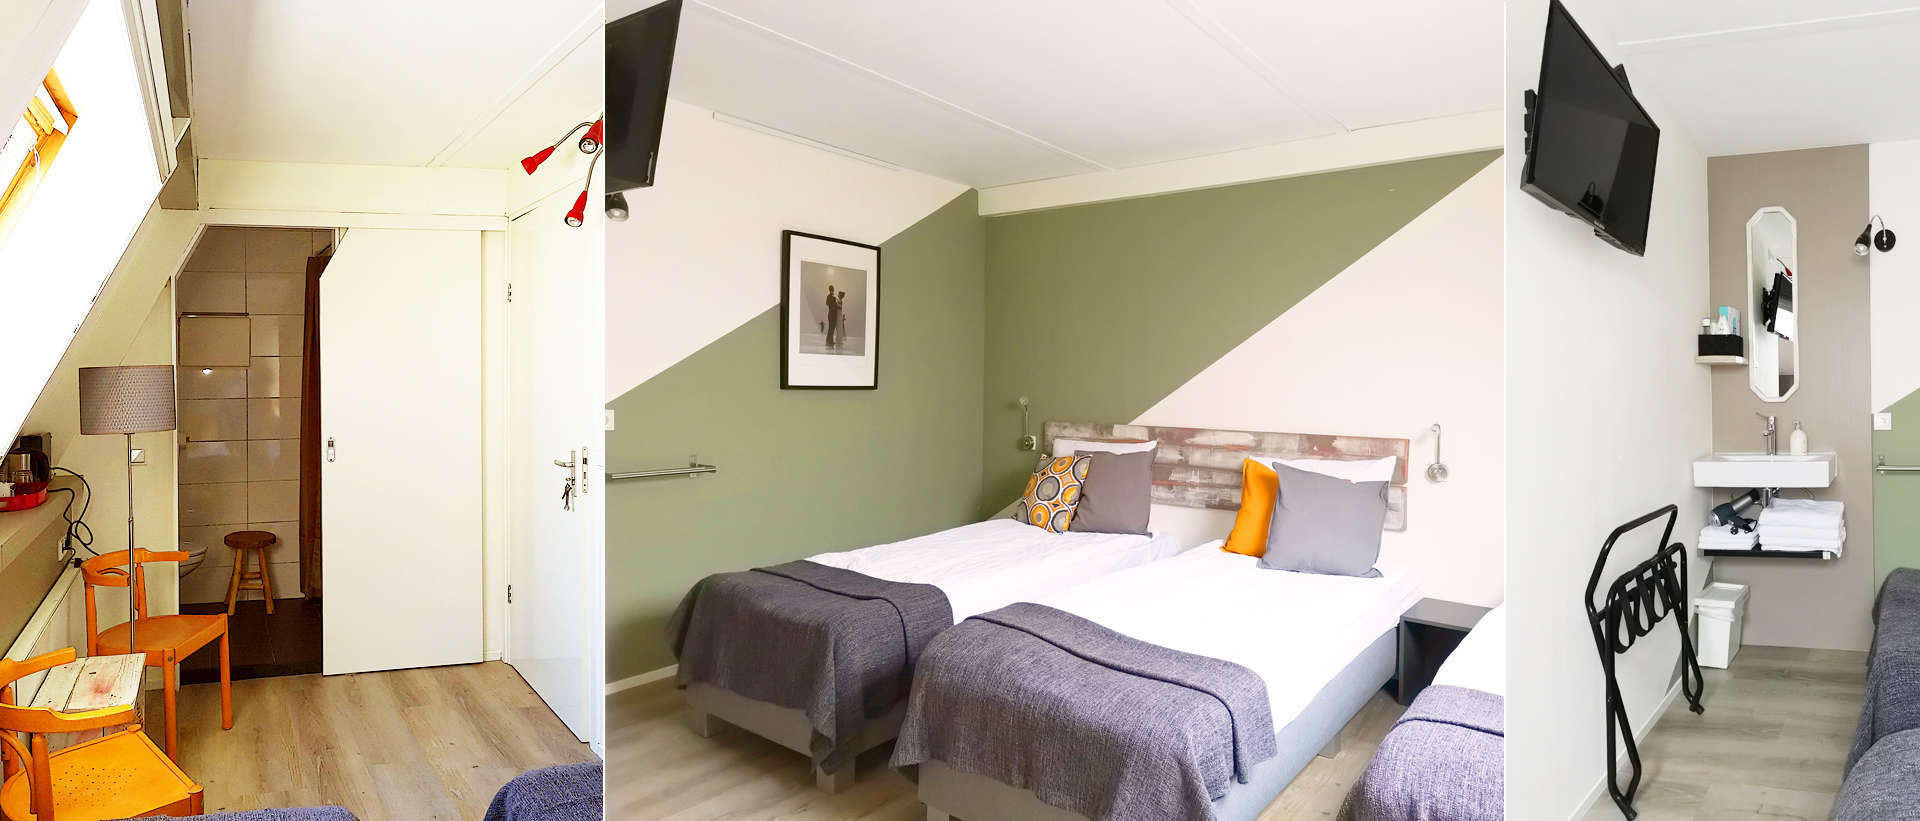 Spacious practical triple room in B&B in the Netherlands